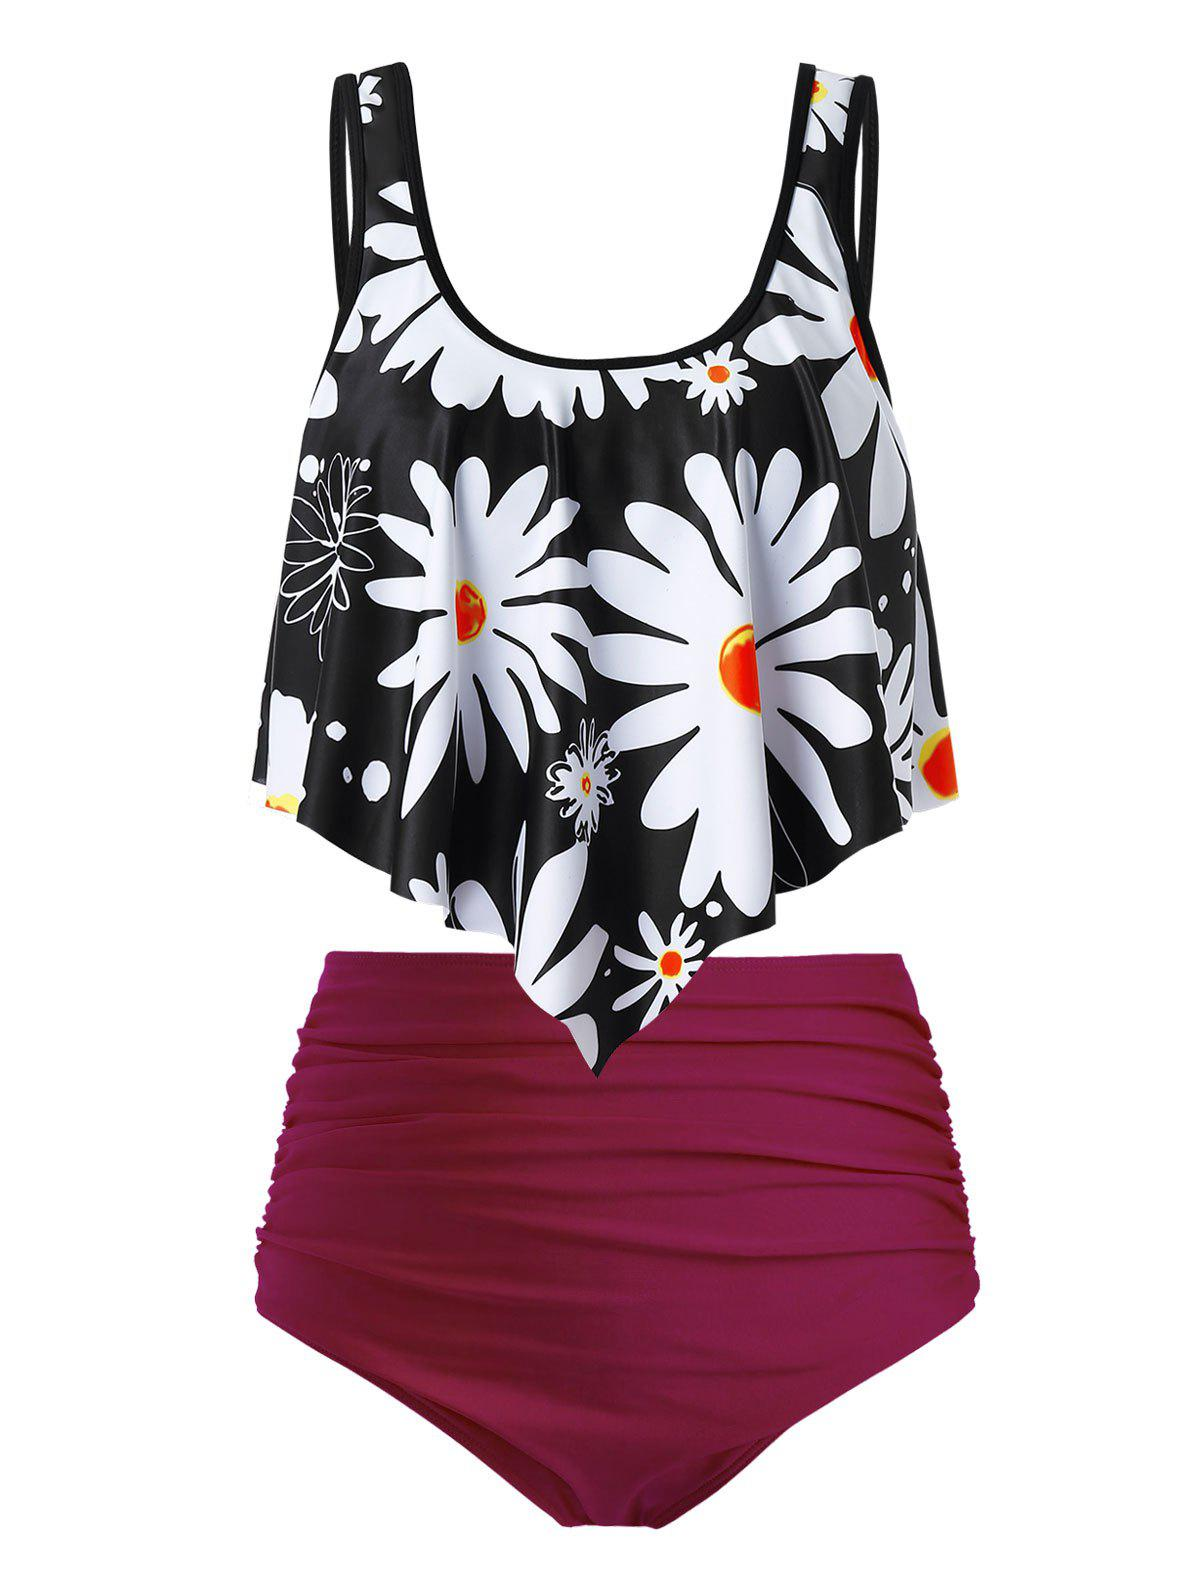 Plus Size Flower Print Flounce Dual Strap Ruched Tankini Swimsuit - multicolor 3X